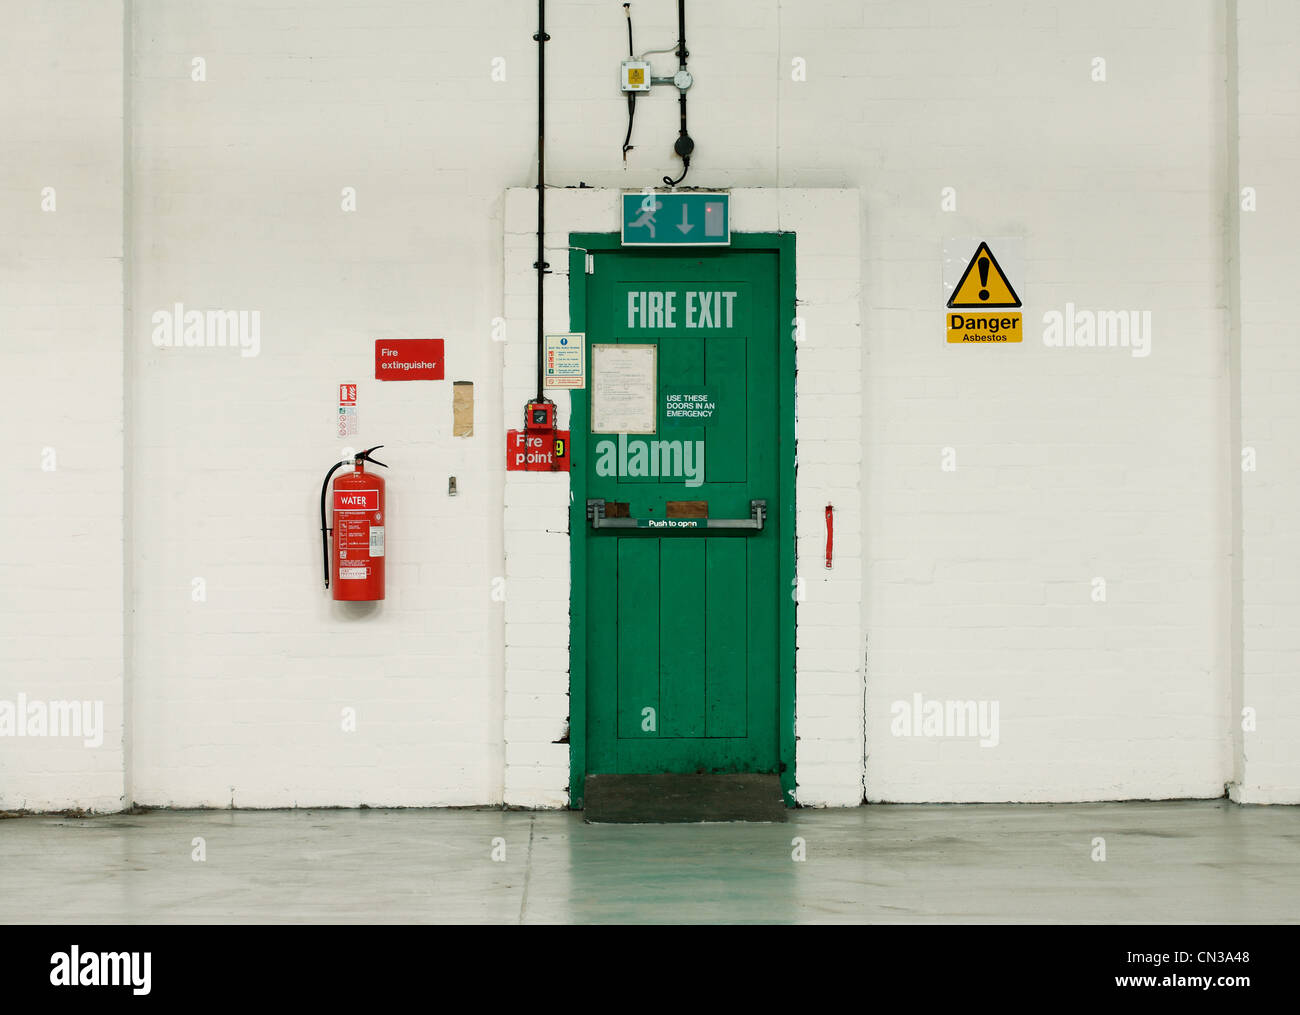 Fire Exit Door And Signs In Industrial Building